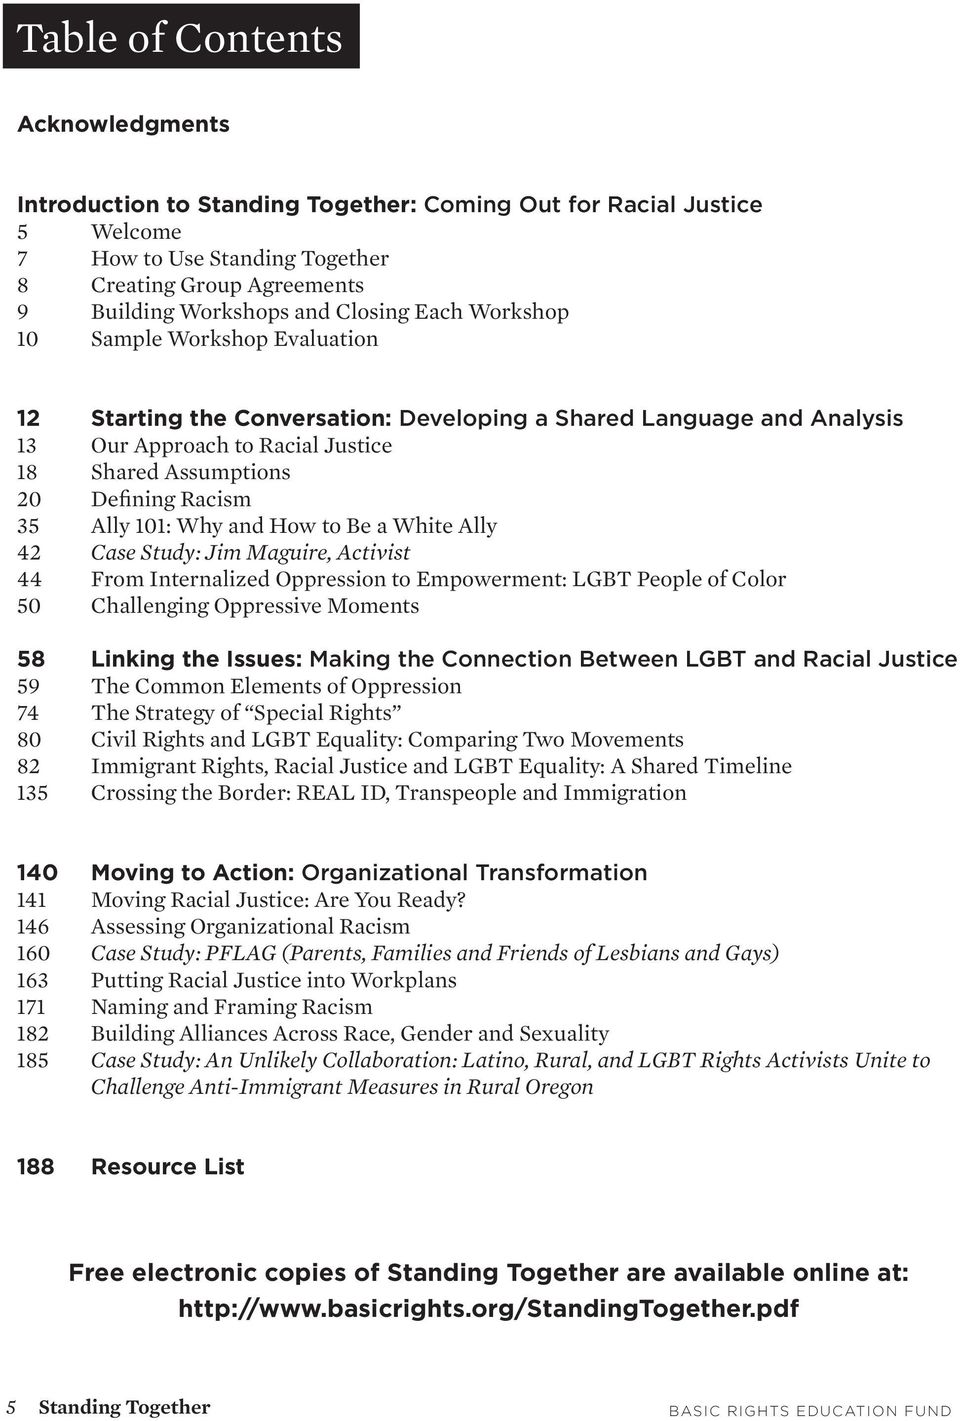 35 Ally 101: Why and How to Be a White Ally 42 Case Study: Jim Maguire, Activist 44 From Internalized Oppression to Empowerment: LGBT People of Color 50 Challenging Oppressive Moments 58 Linking the